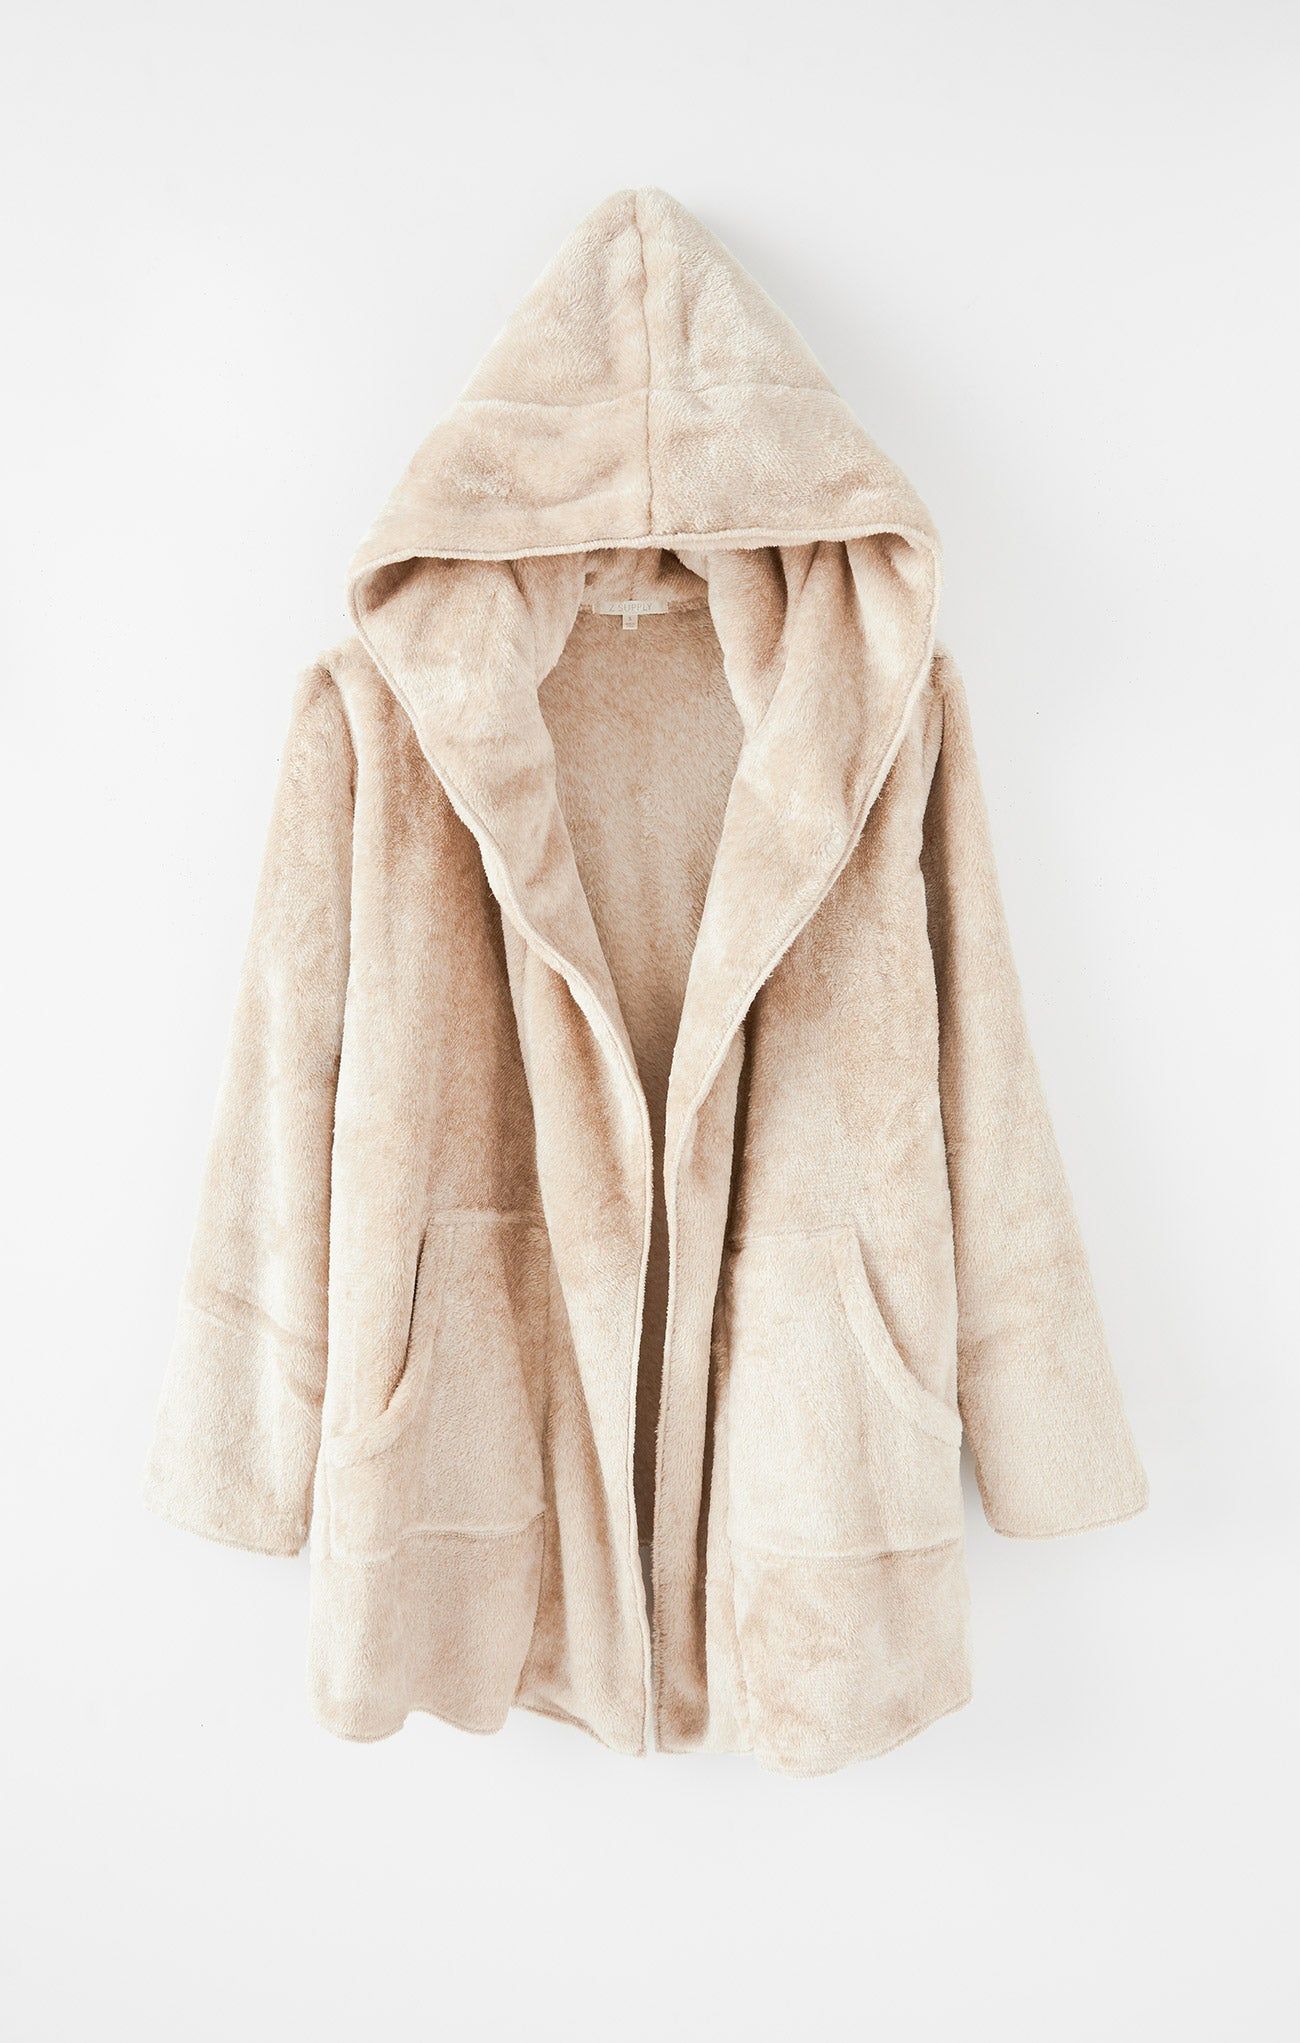 Jackets Cozy Feels Plush Cardigan Cozy Feels Plush Cardigan